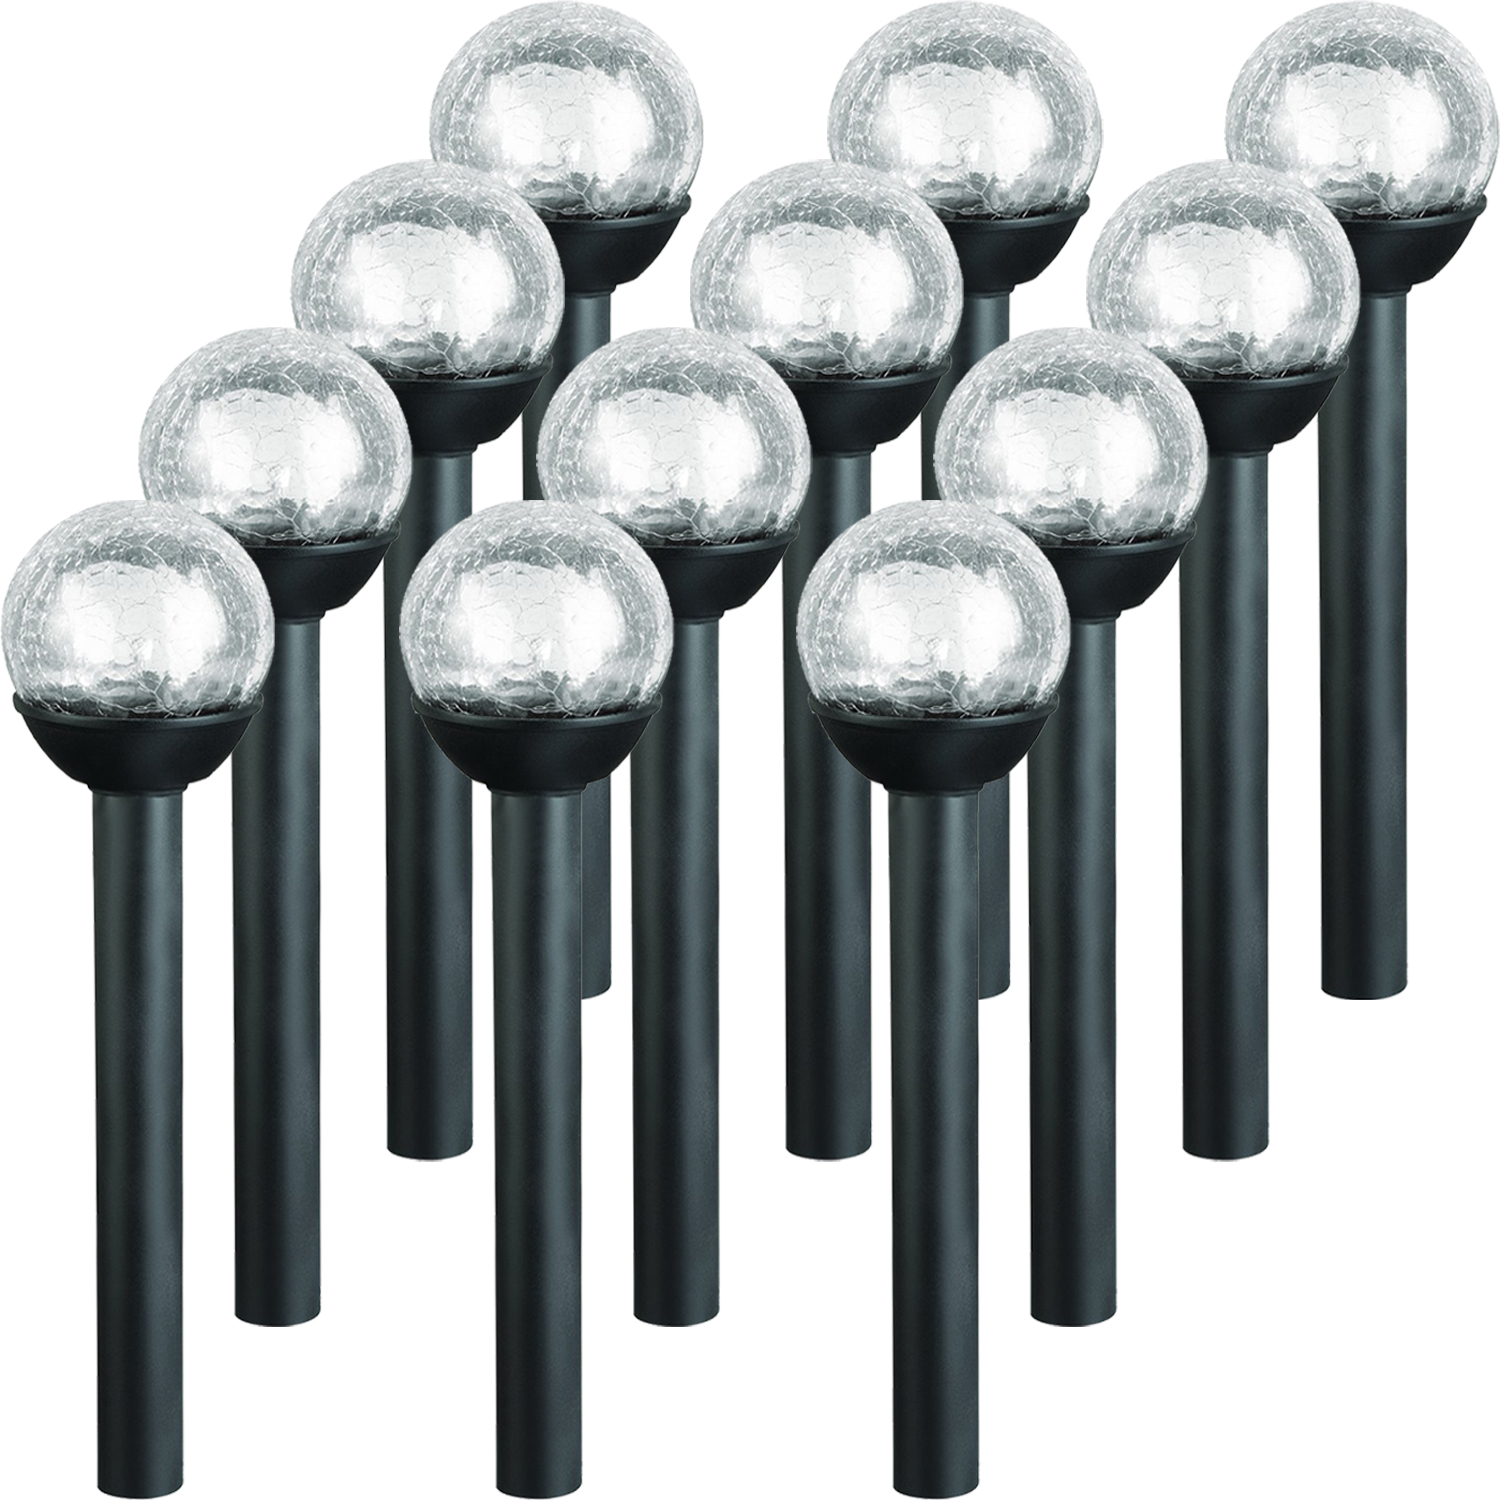 WESTINGHOUSE NEW Black Petite Solar Power LED Crackle Ball Path Light (12 Pack)